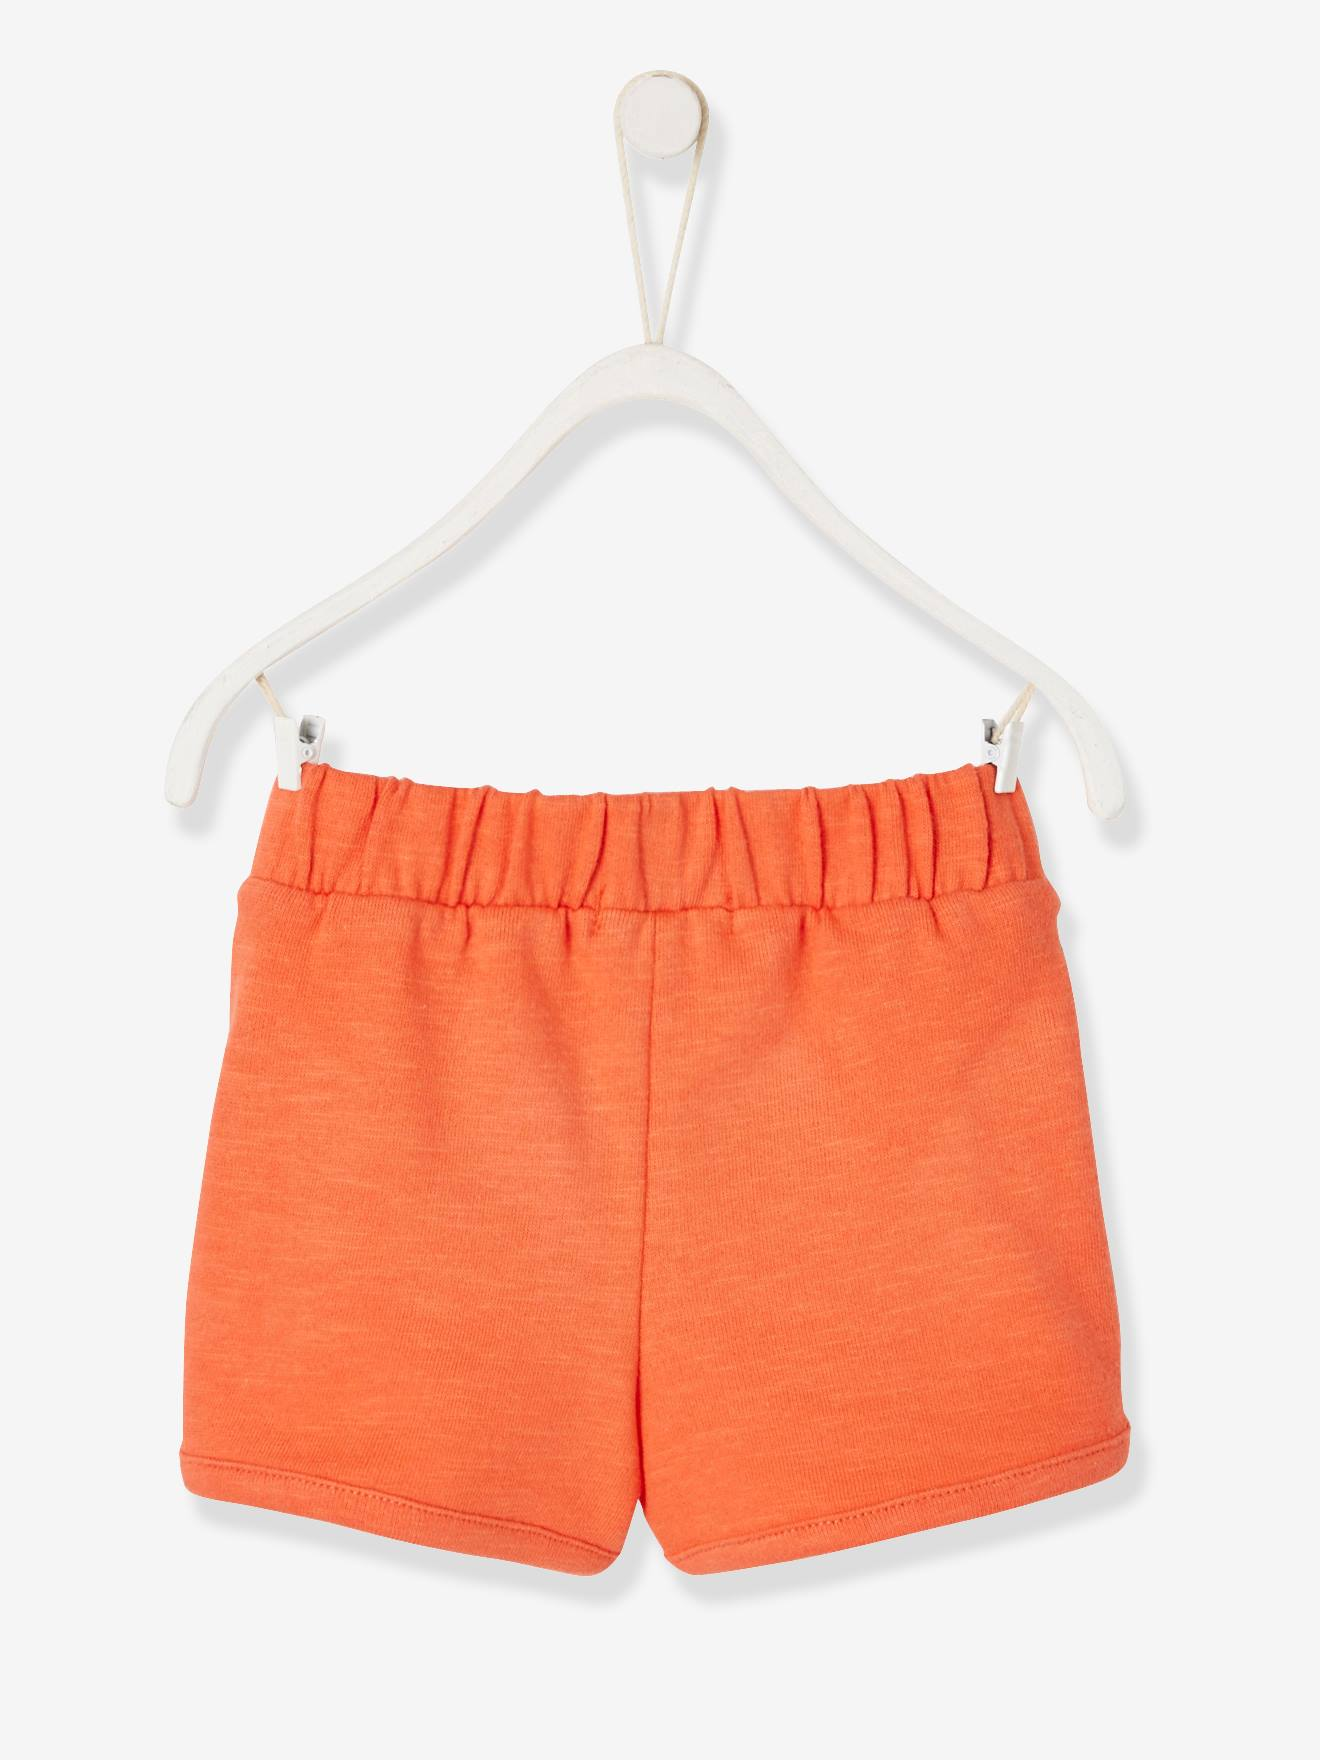 girls orange shorts